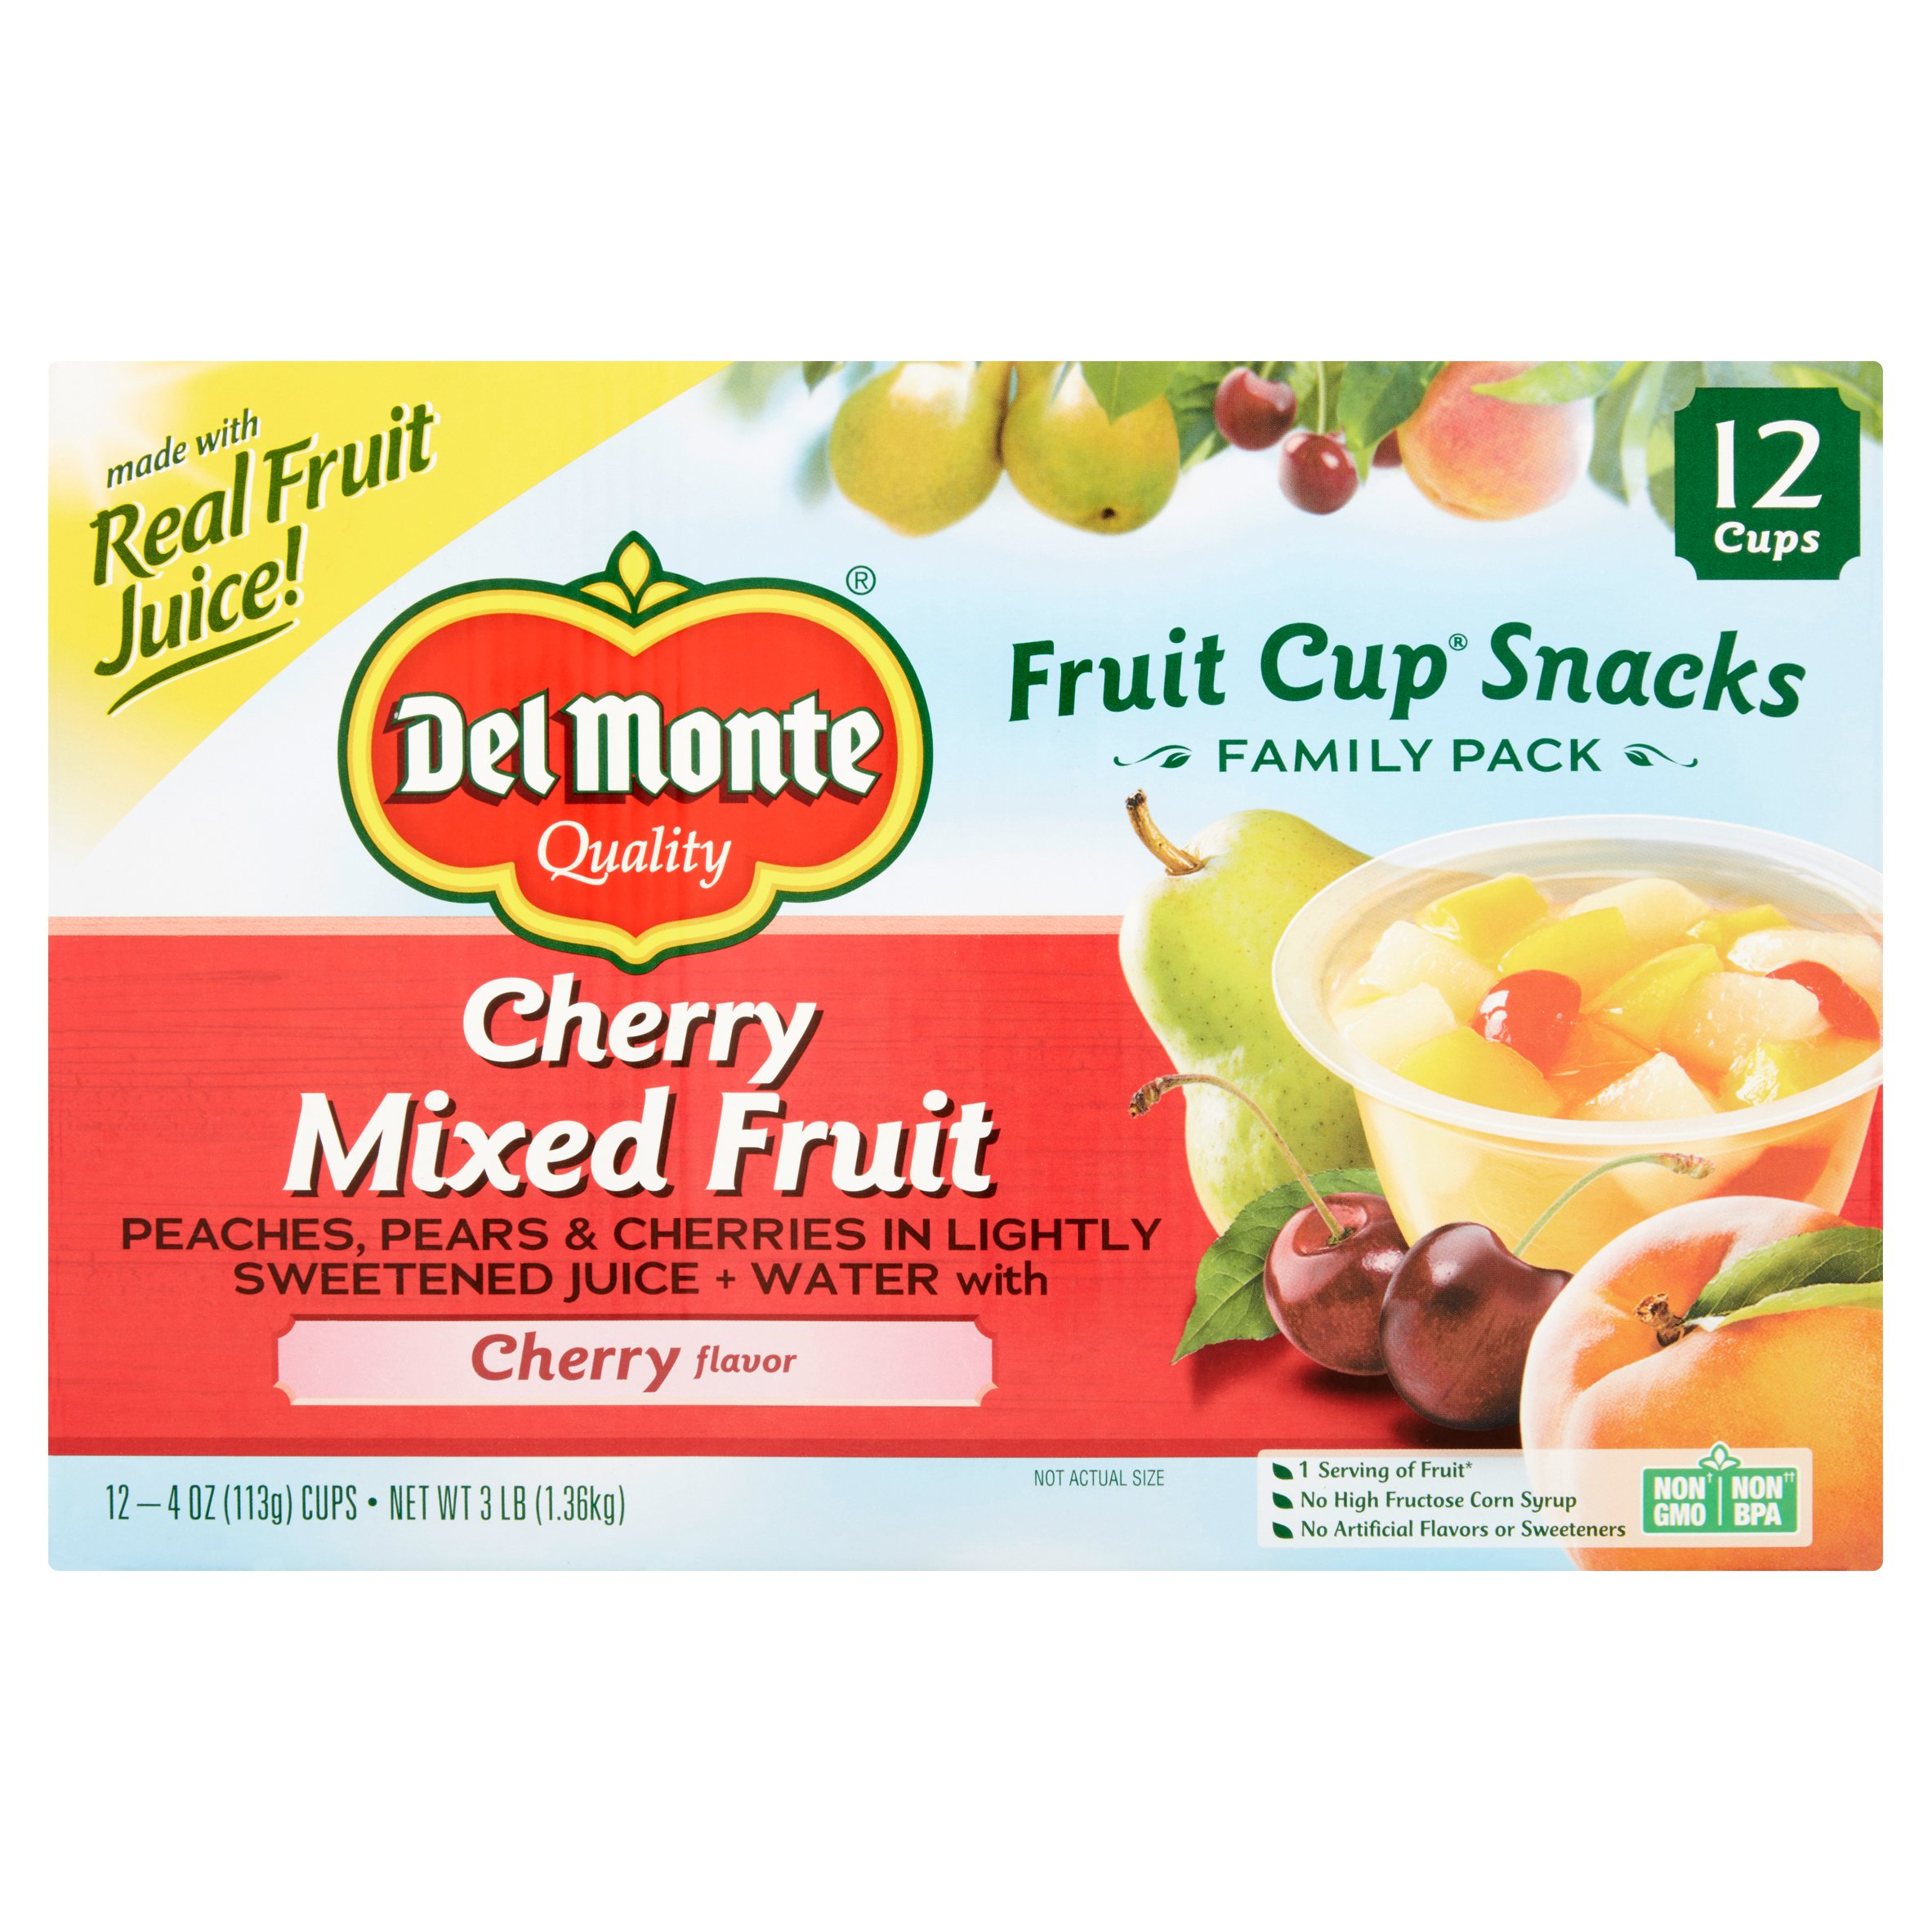 Del Monte Cherry Mixed Fruit Fruit Cup Snacks, 4 oz, 12 count by Del Monte Foods